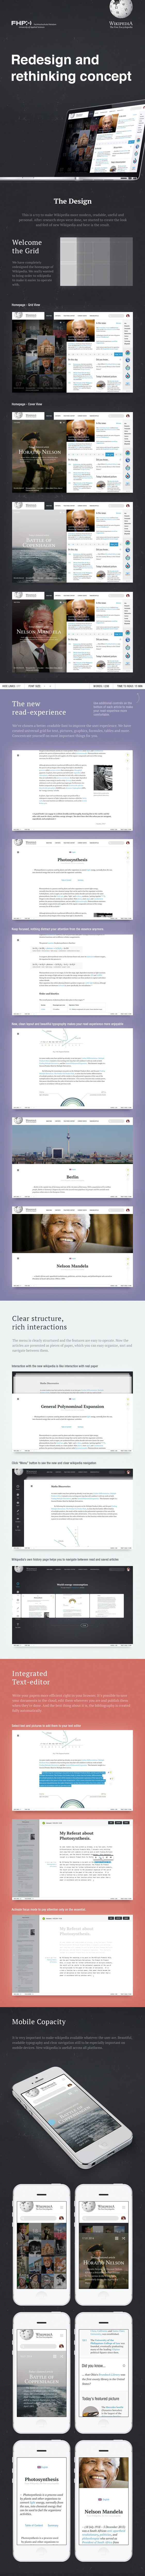 Wikipedia Redesign Concept < repinned by kalypso - web & mobile design | Take a look at http://kalypso.es/ >